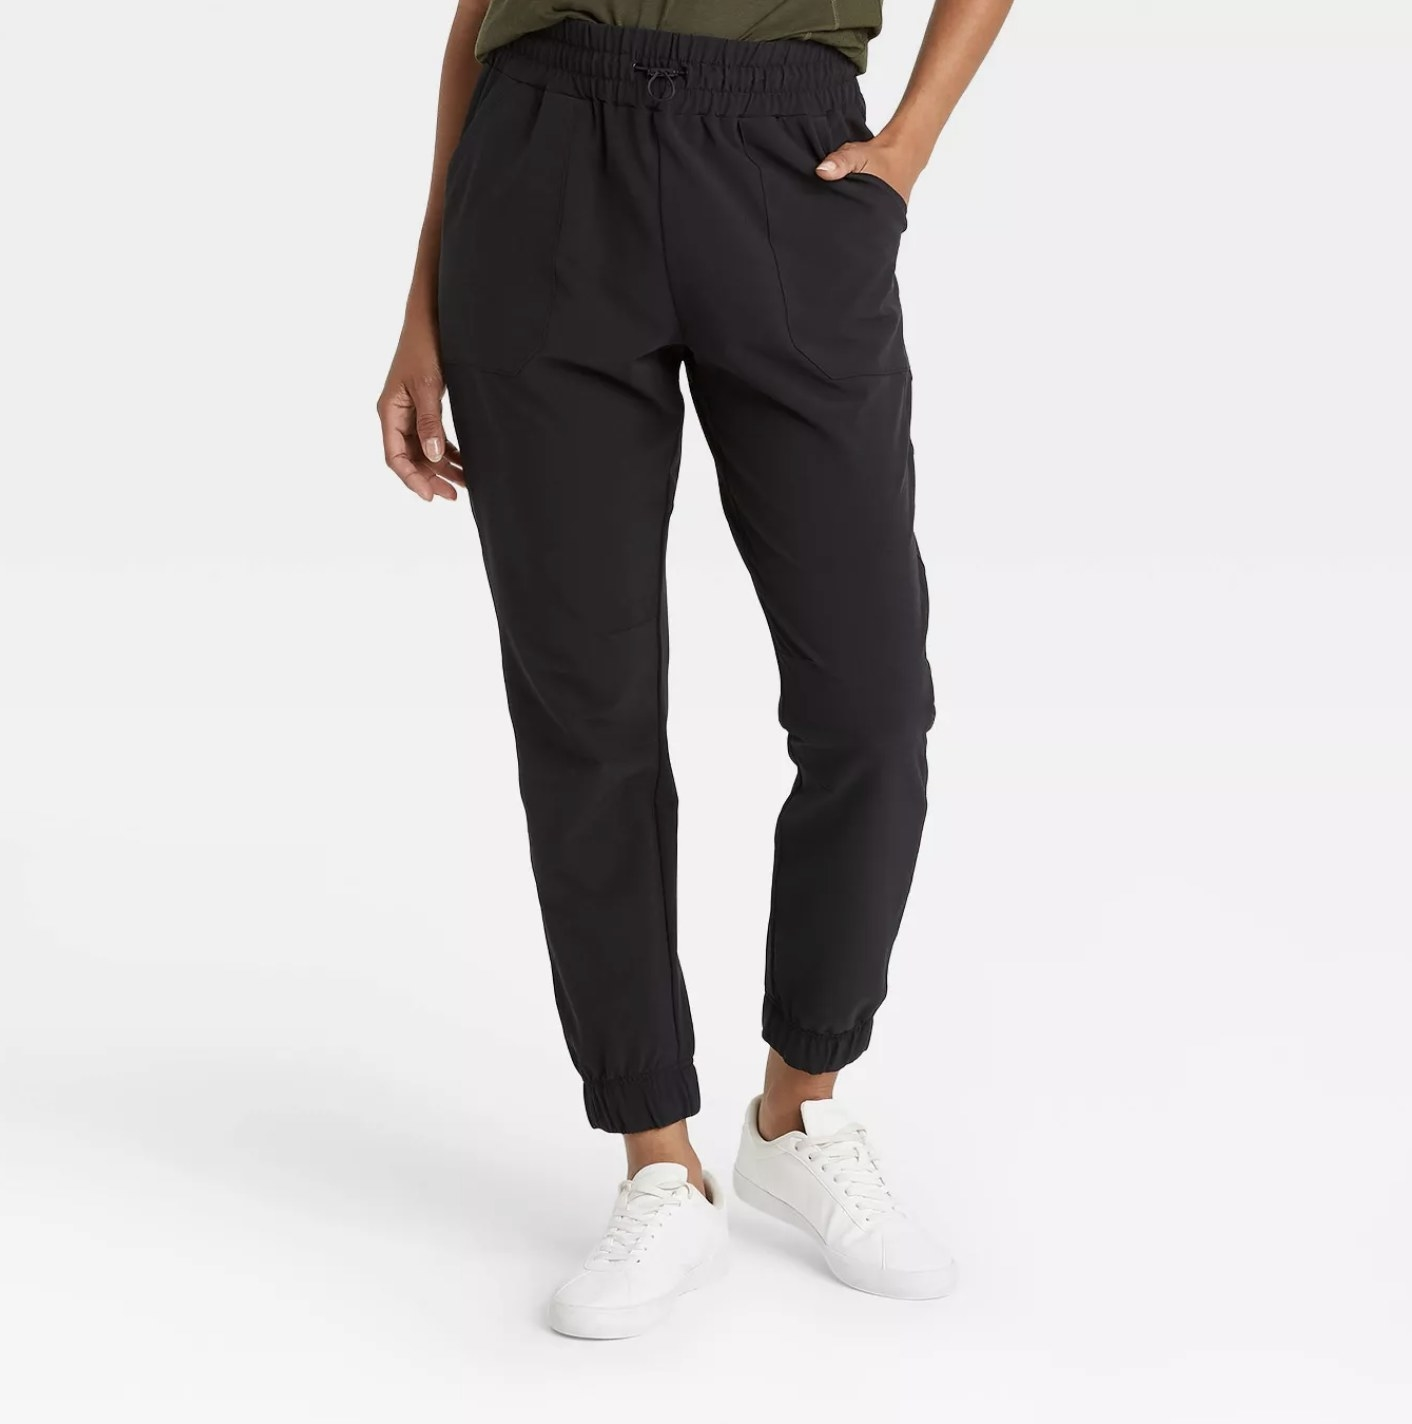 Model is wearing black ankle-length joggers